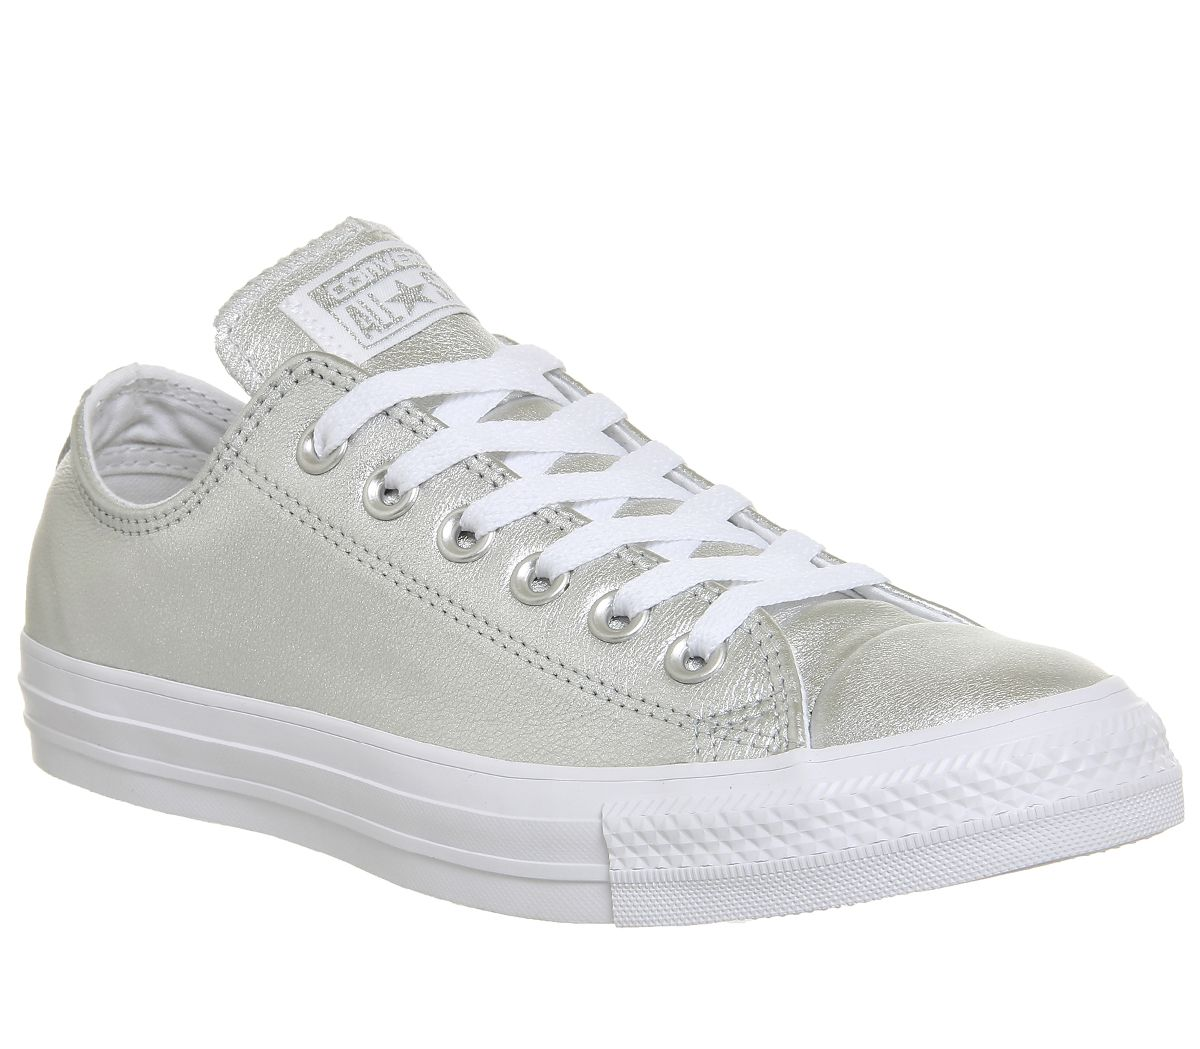 85123d6caccd Converse All Star Low Leather Pure Silver White - Hers trainers